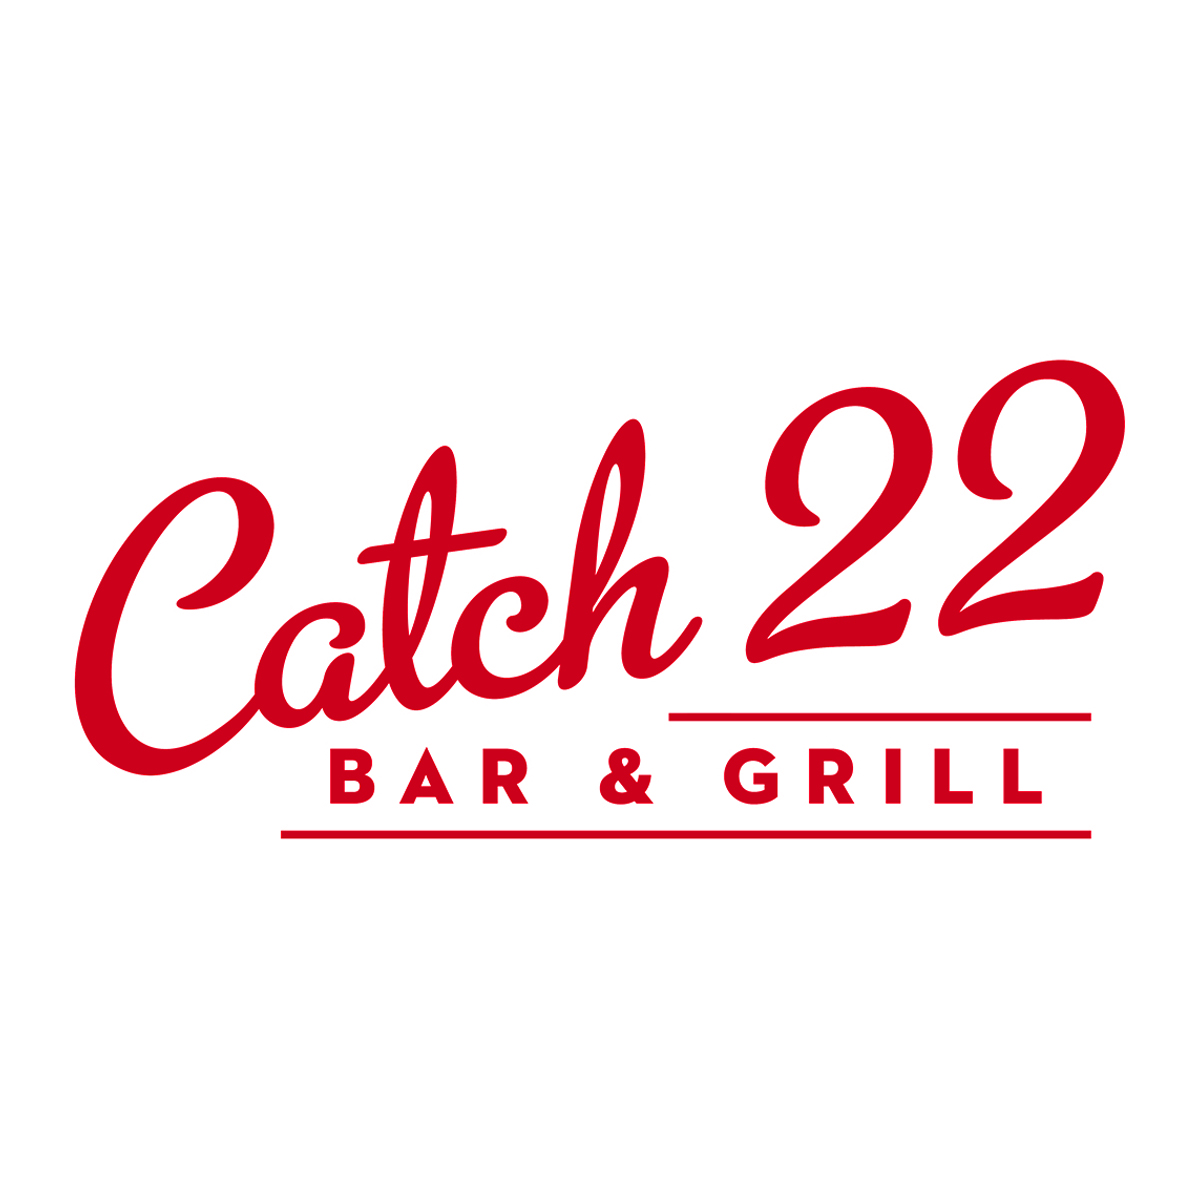 Catch22 Logo V2 01.jpg